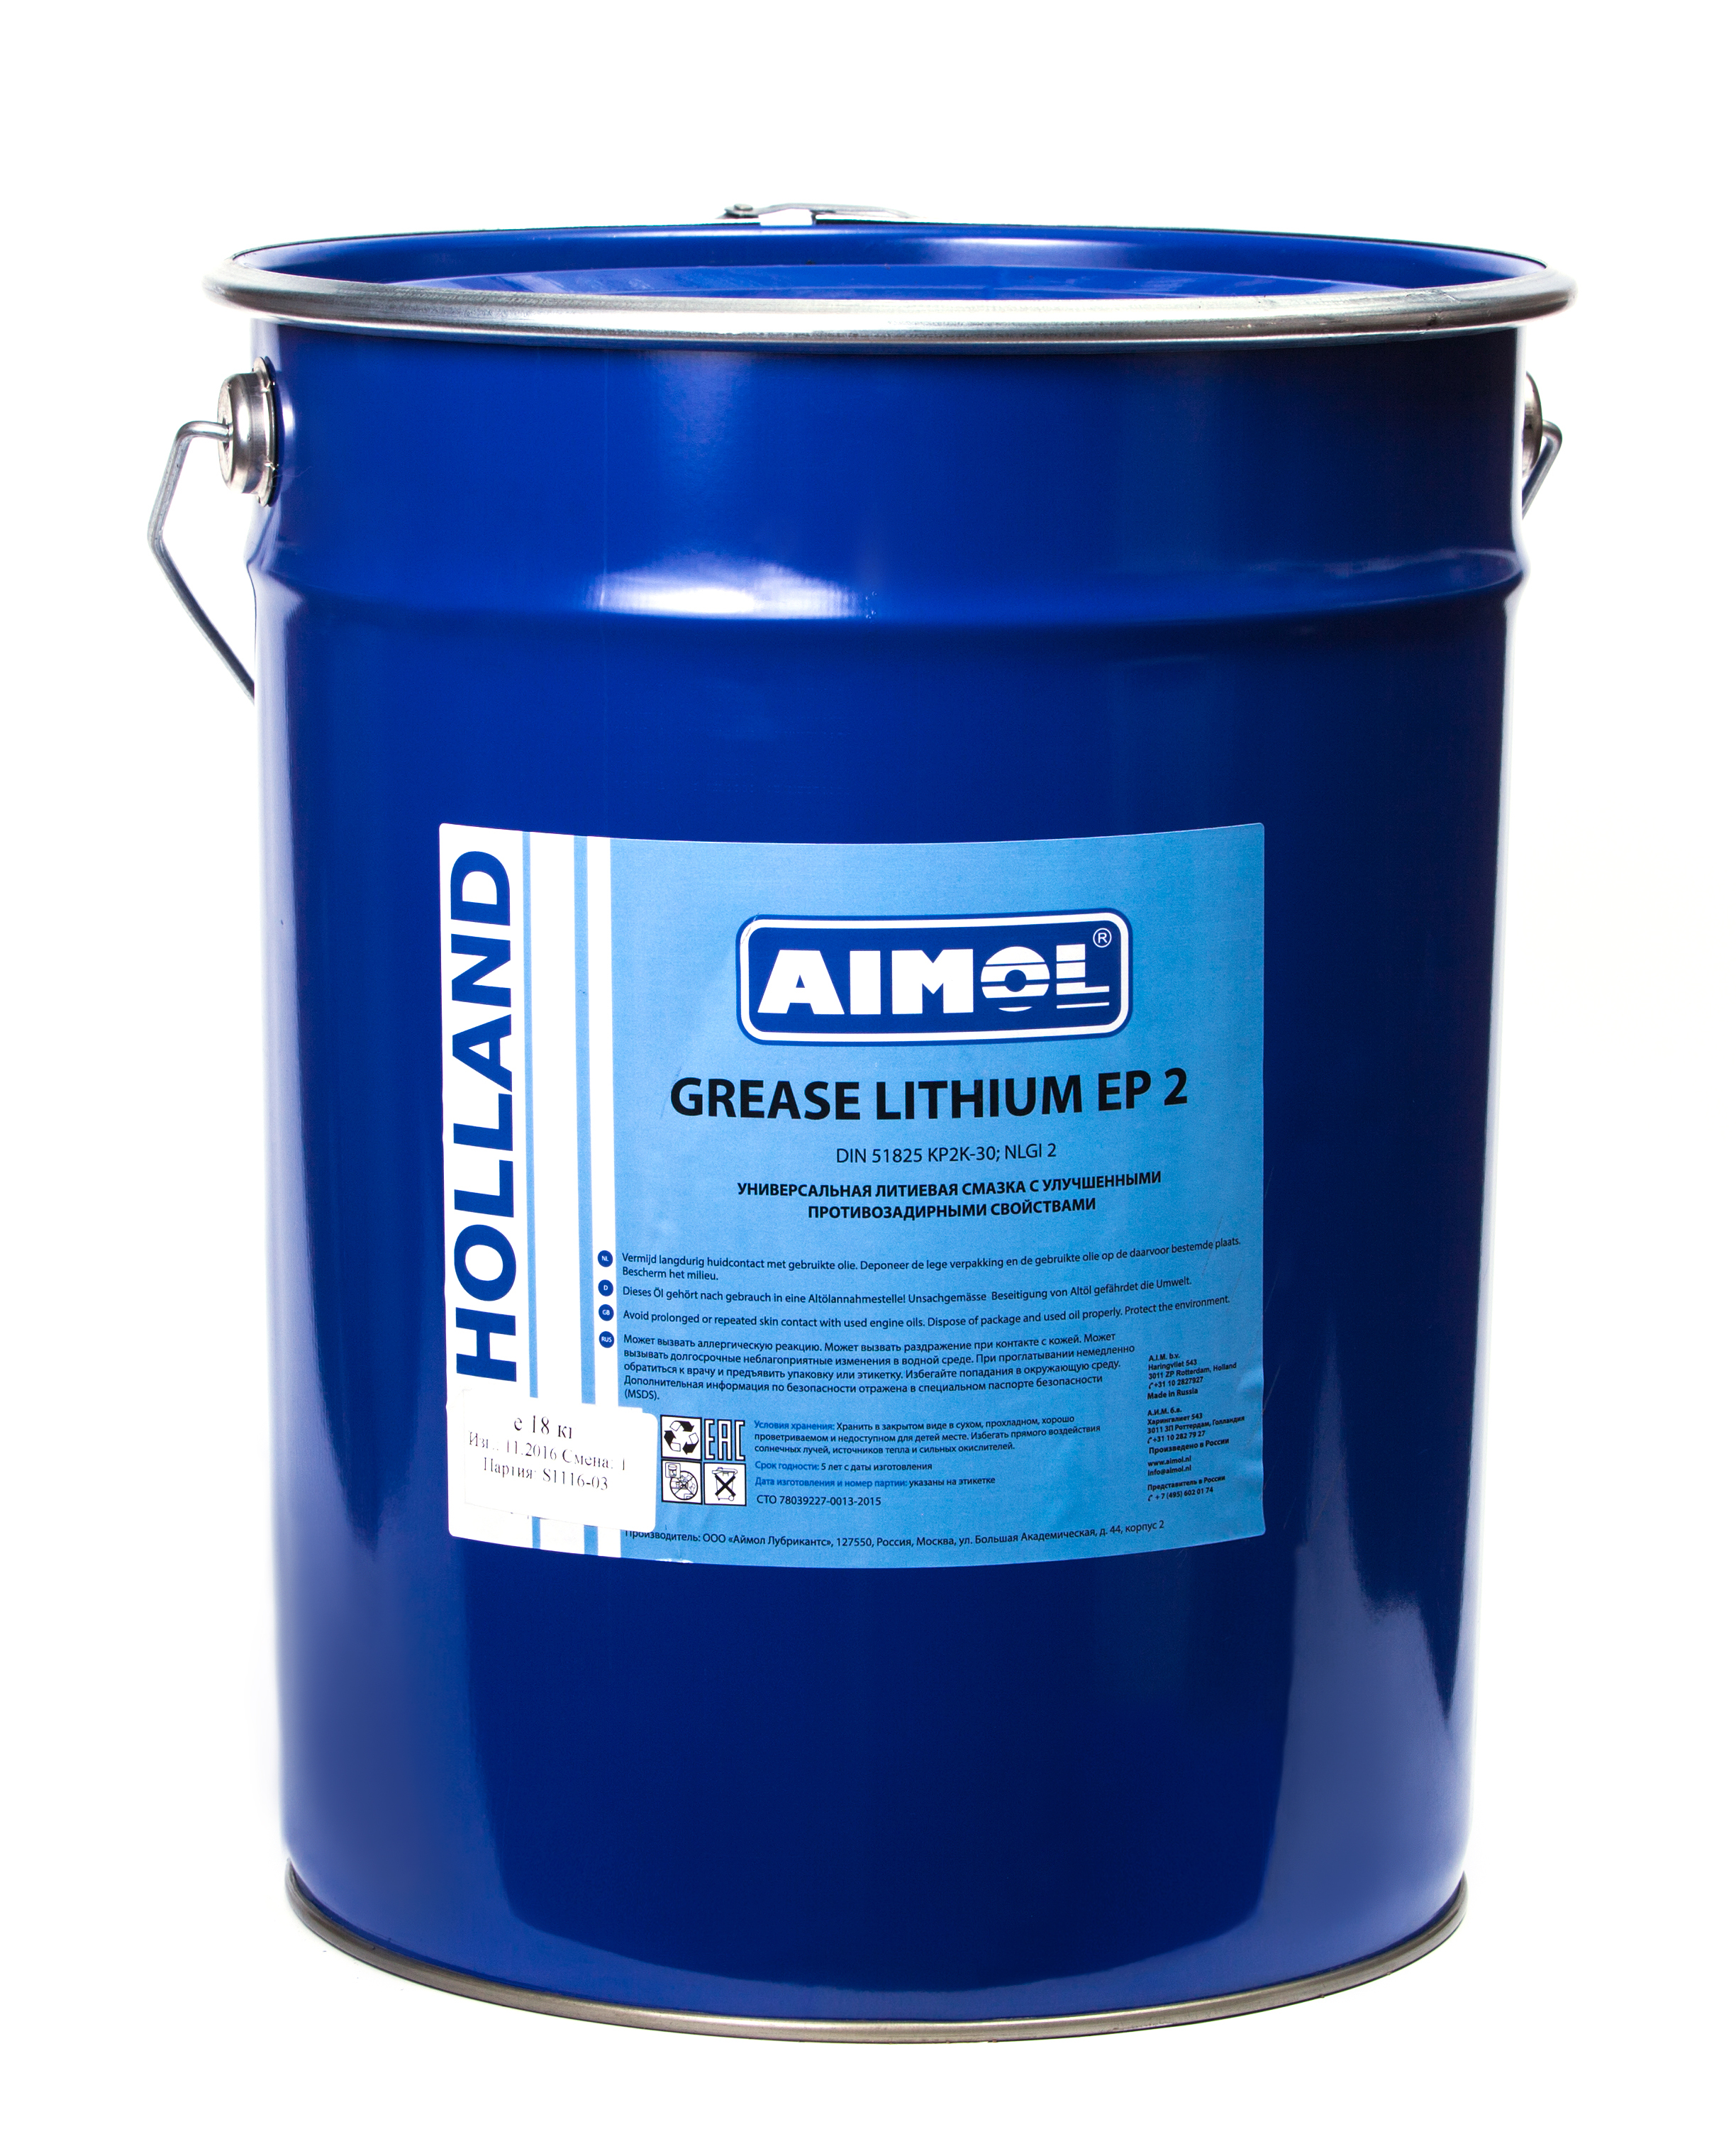 AIMOL Paste ZN 50